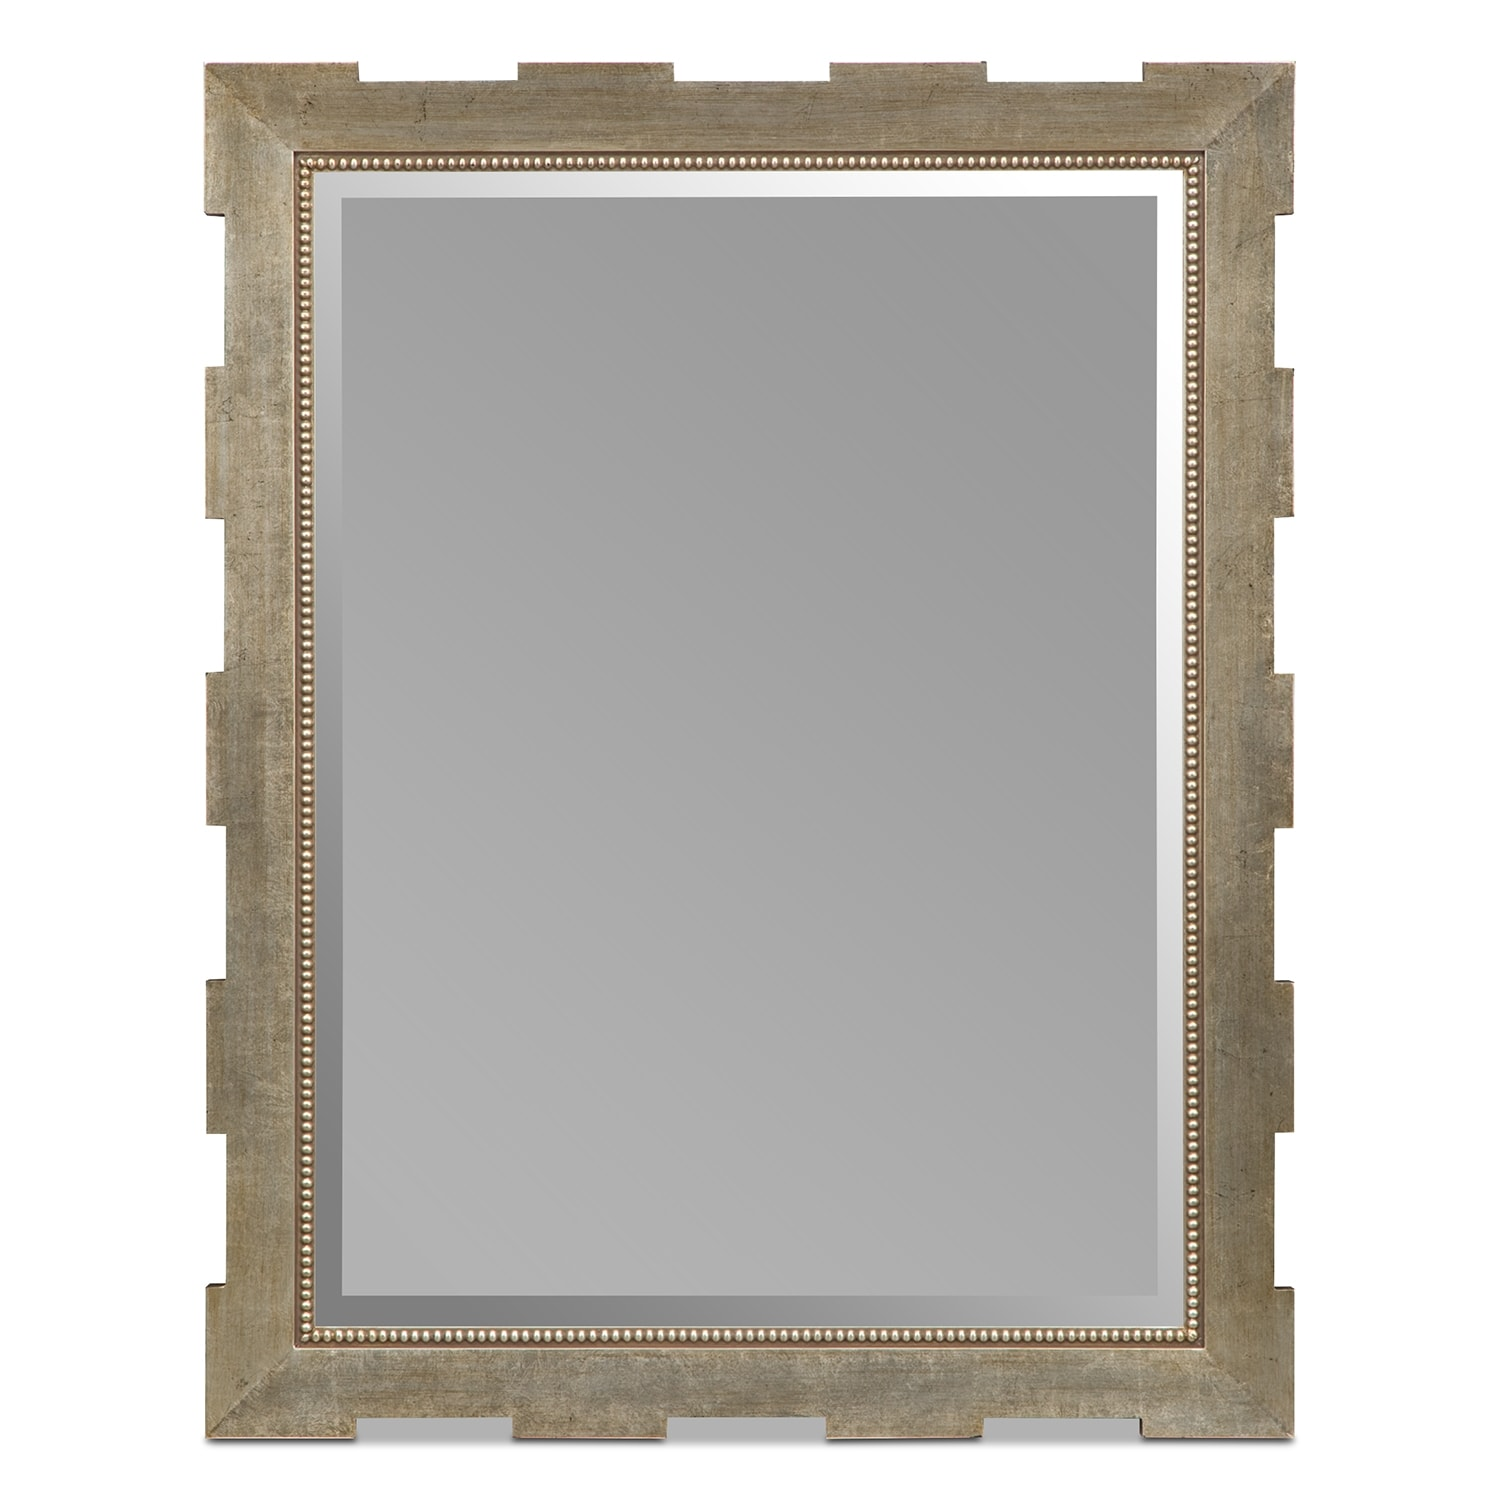 Home Accessories - Josie Wall Mirror - Brushed Sand